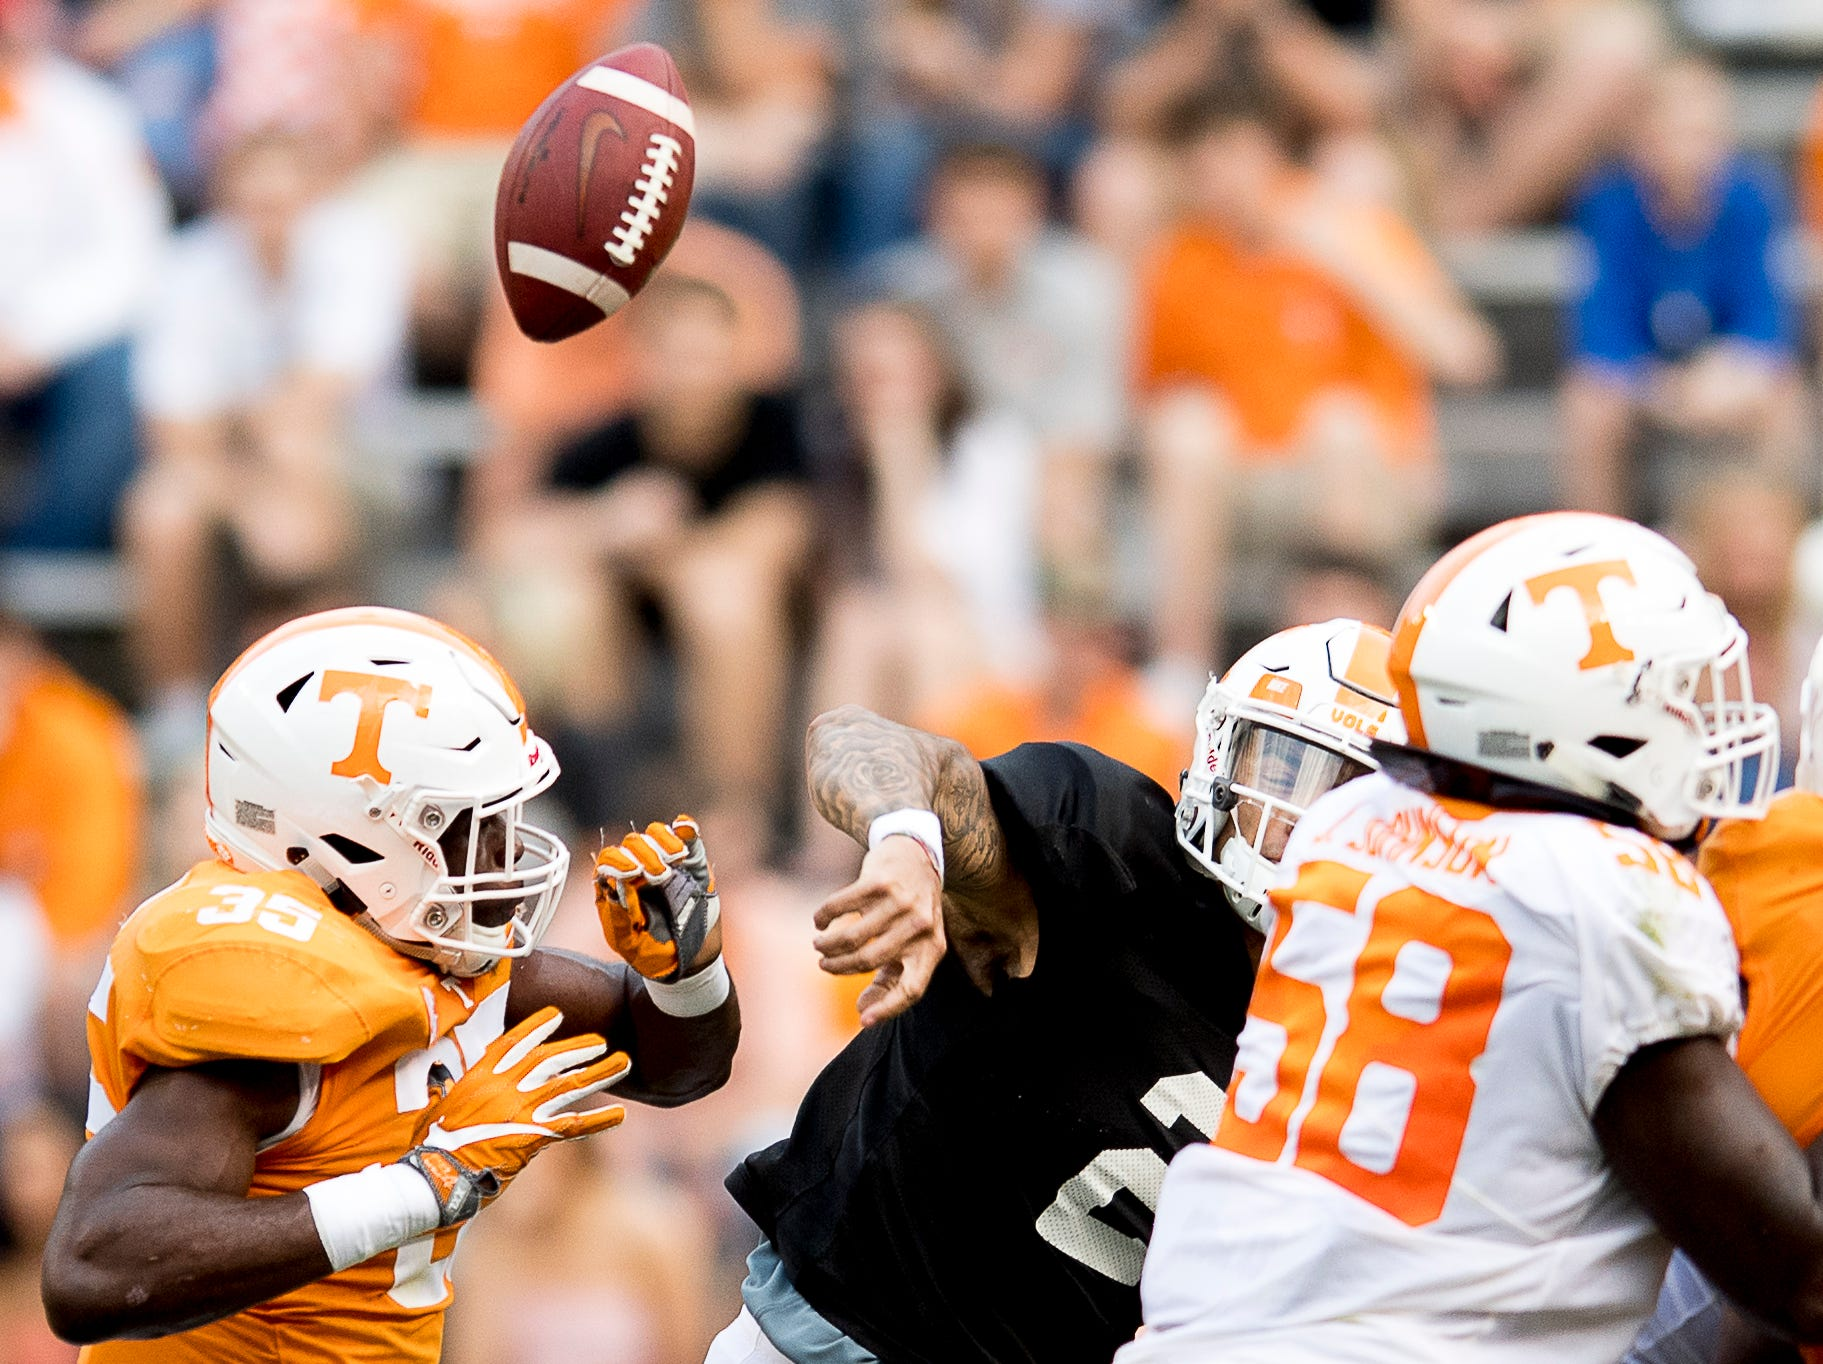 Tennessee quarterback Jarrett Guarantano (2) flops a pass during the Tennessee Spring Game at Neyland Stadium in Knoxville, Tennessee on Saturday, April 13, 2019.